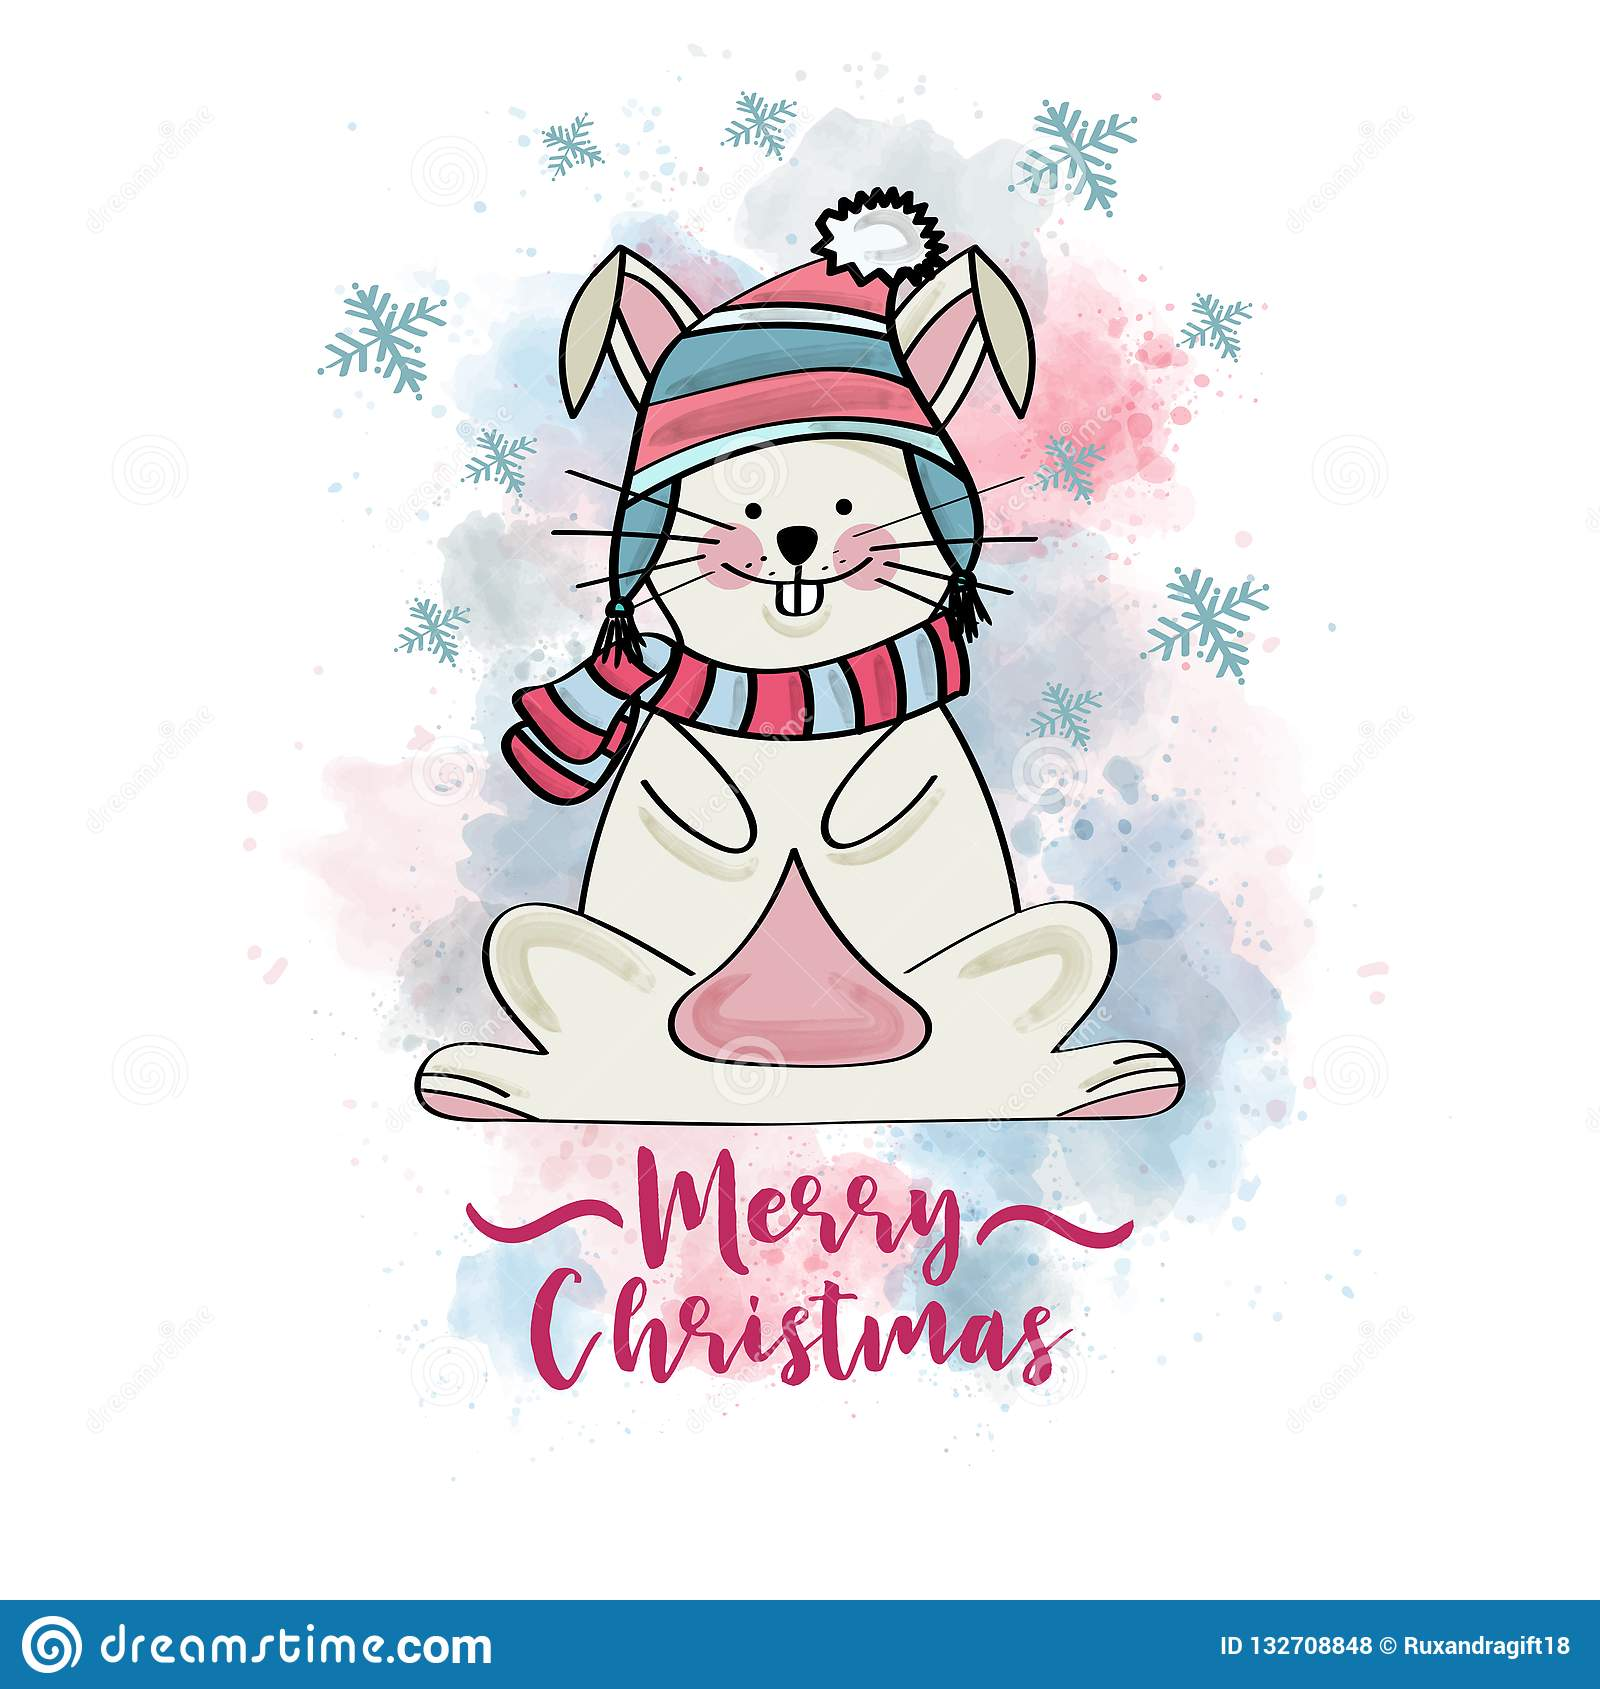 Doodle Christmas card with dressed bunny